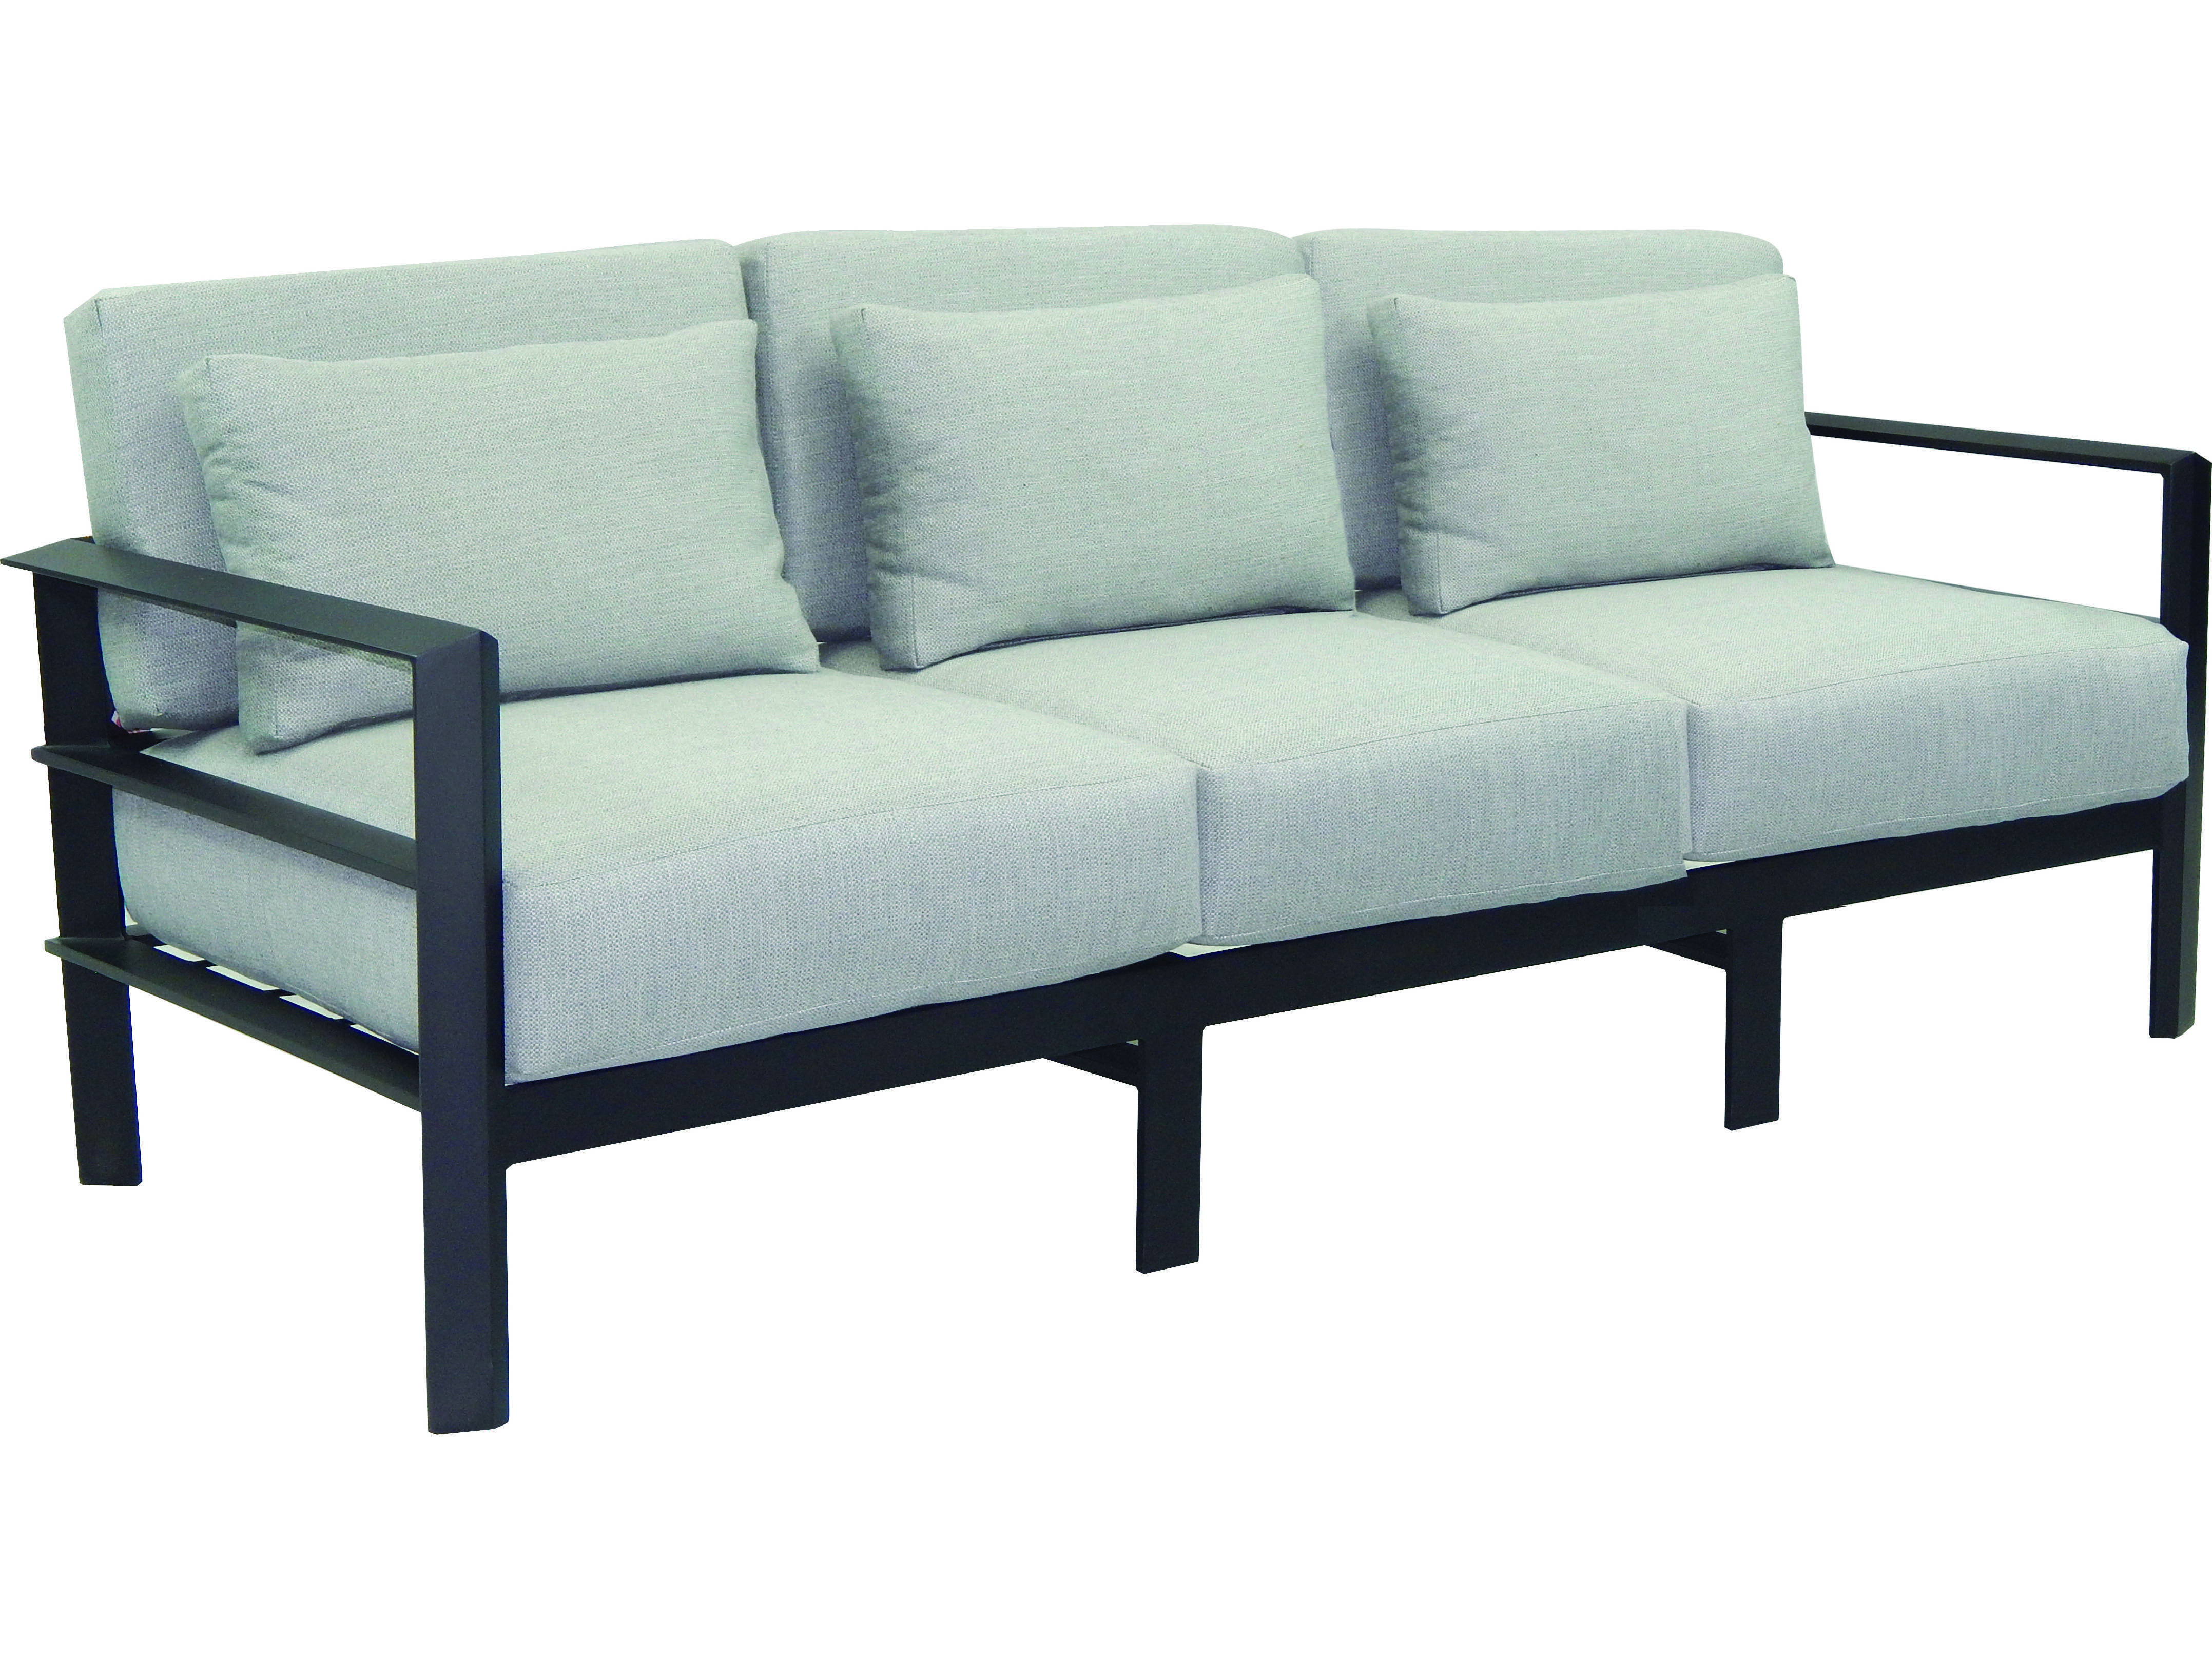 Castelle Vertice City Deep Seating Aluminum Sofa with Three